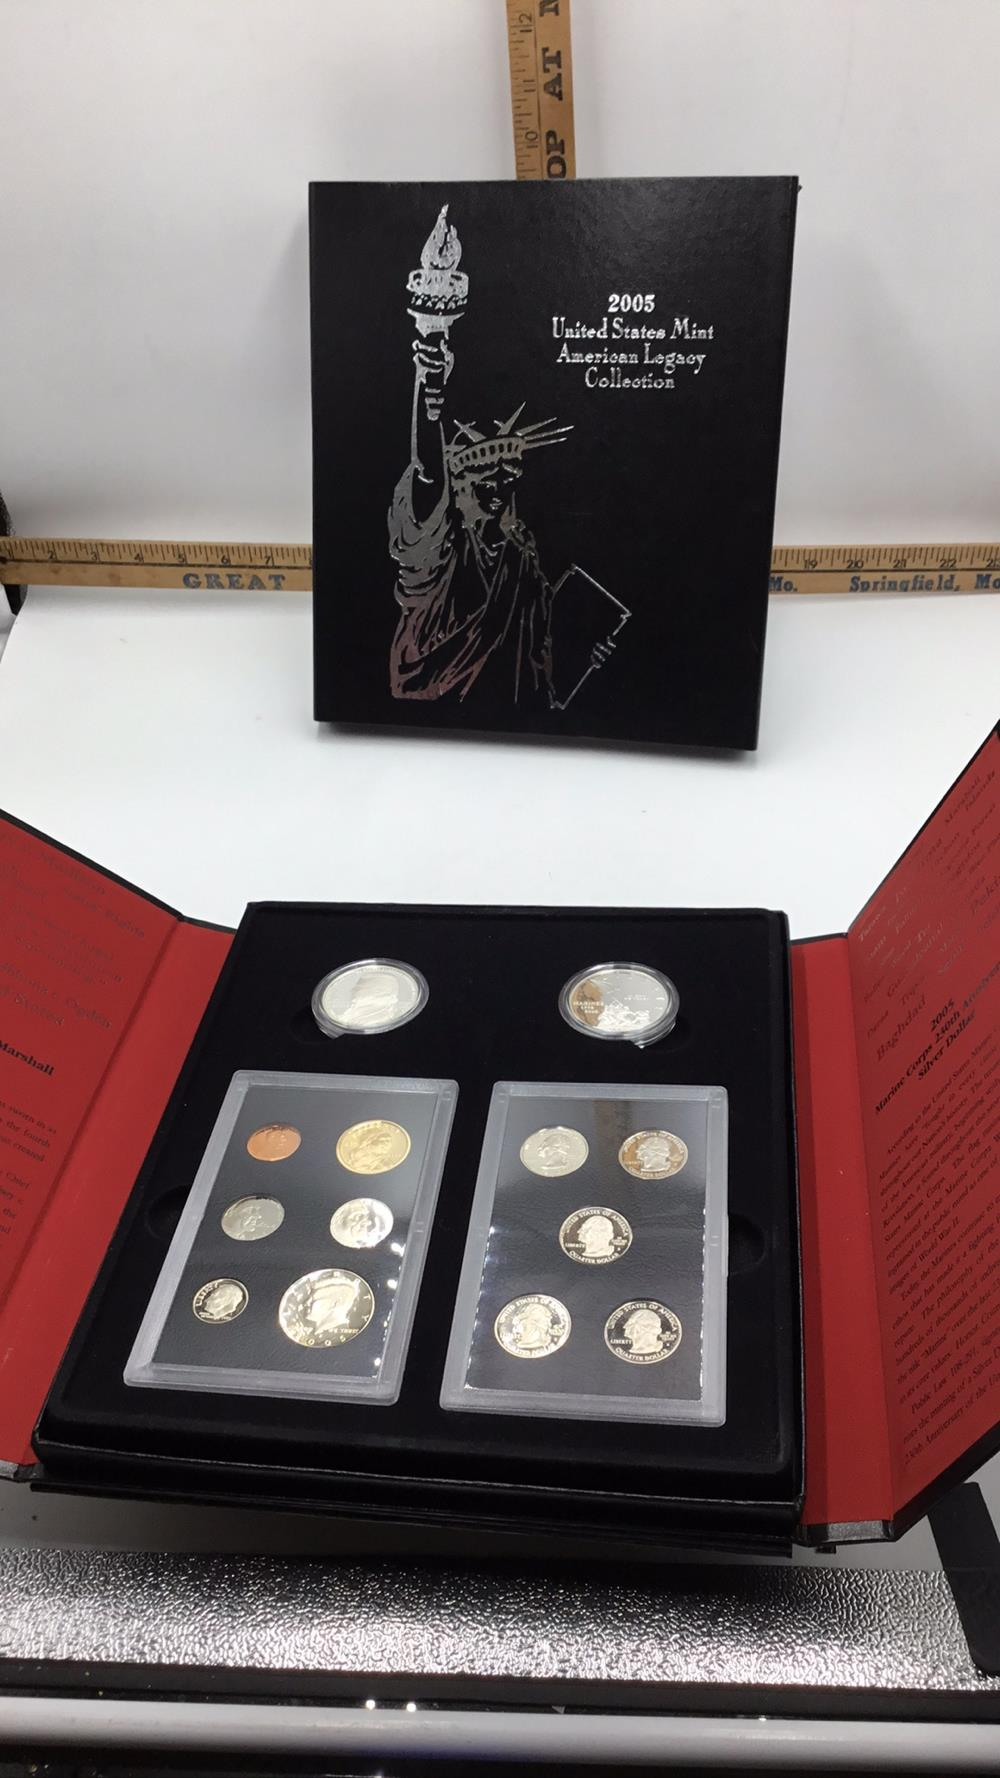 United States mint American legacy collection